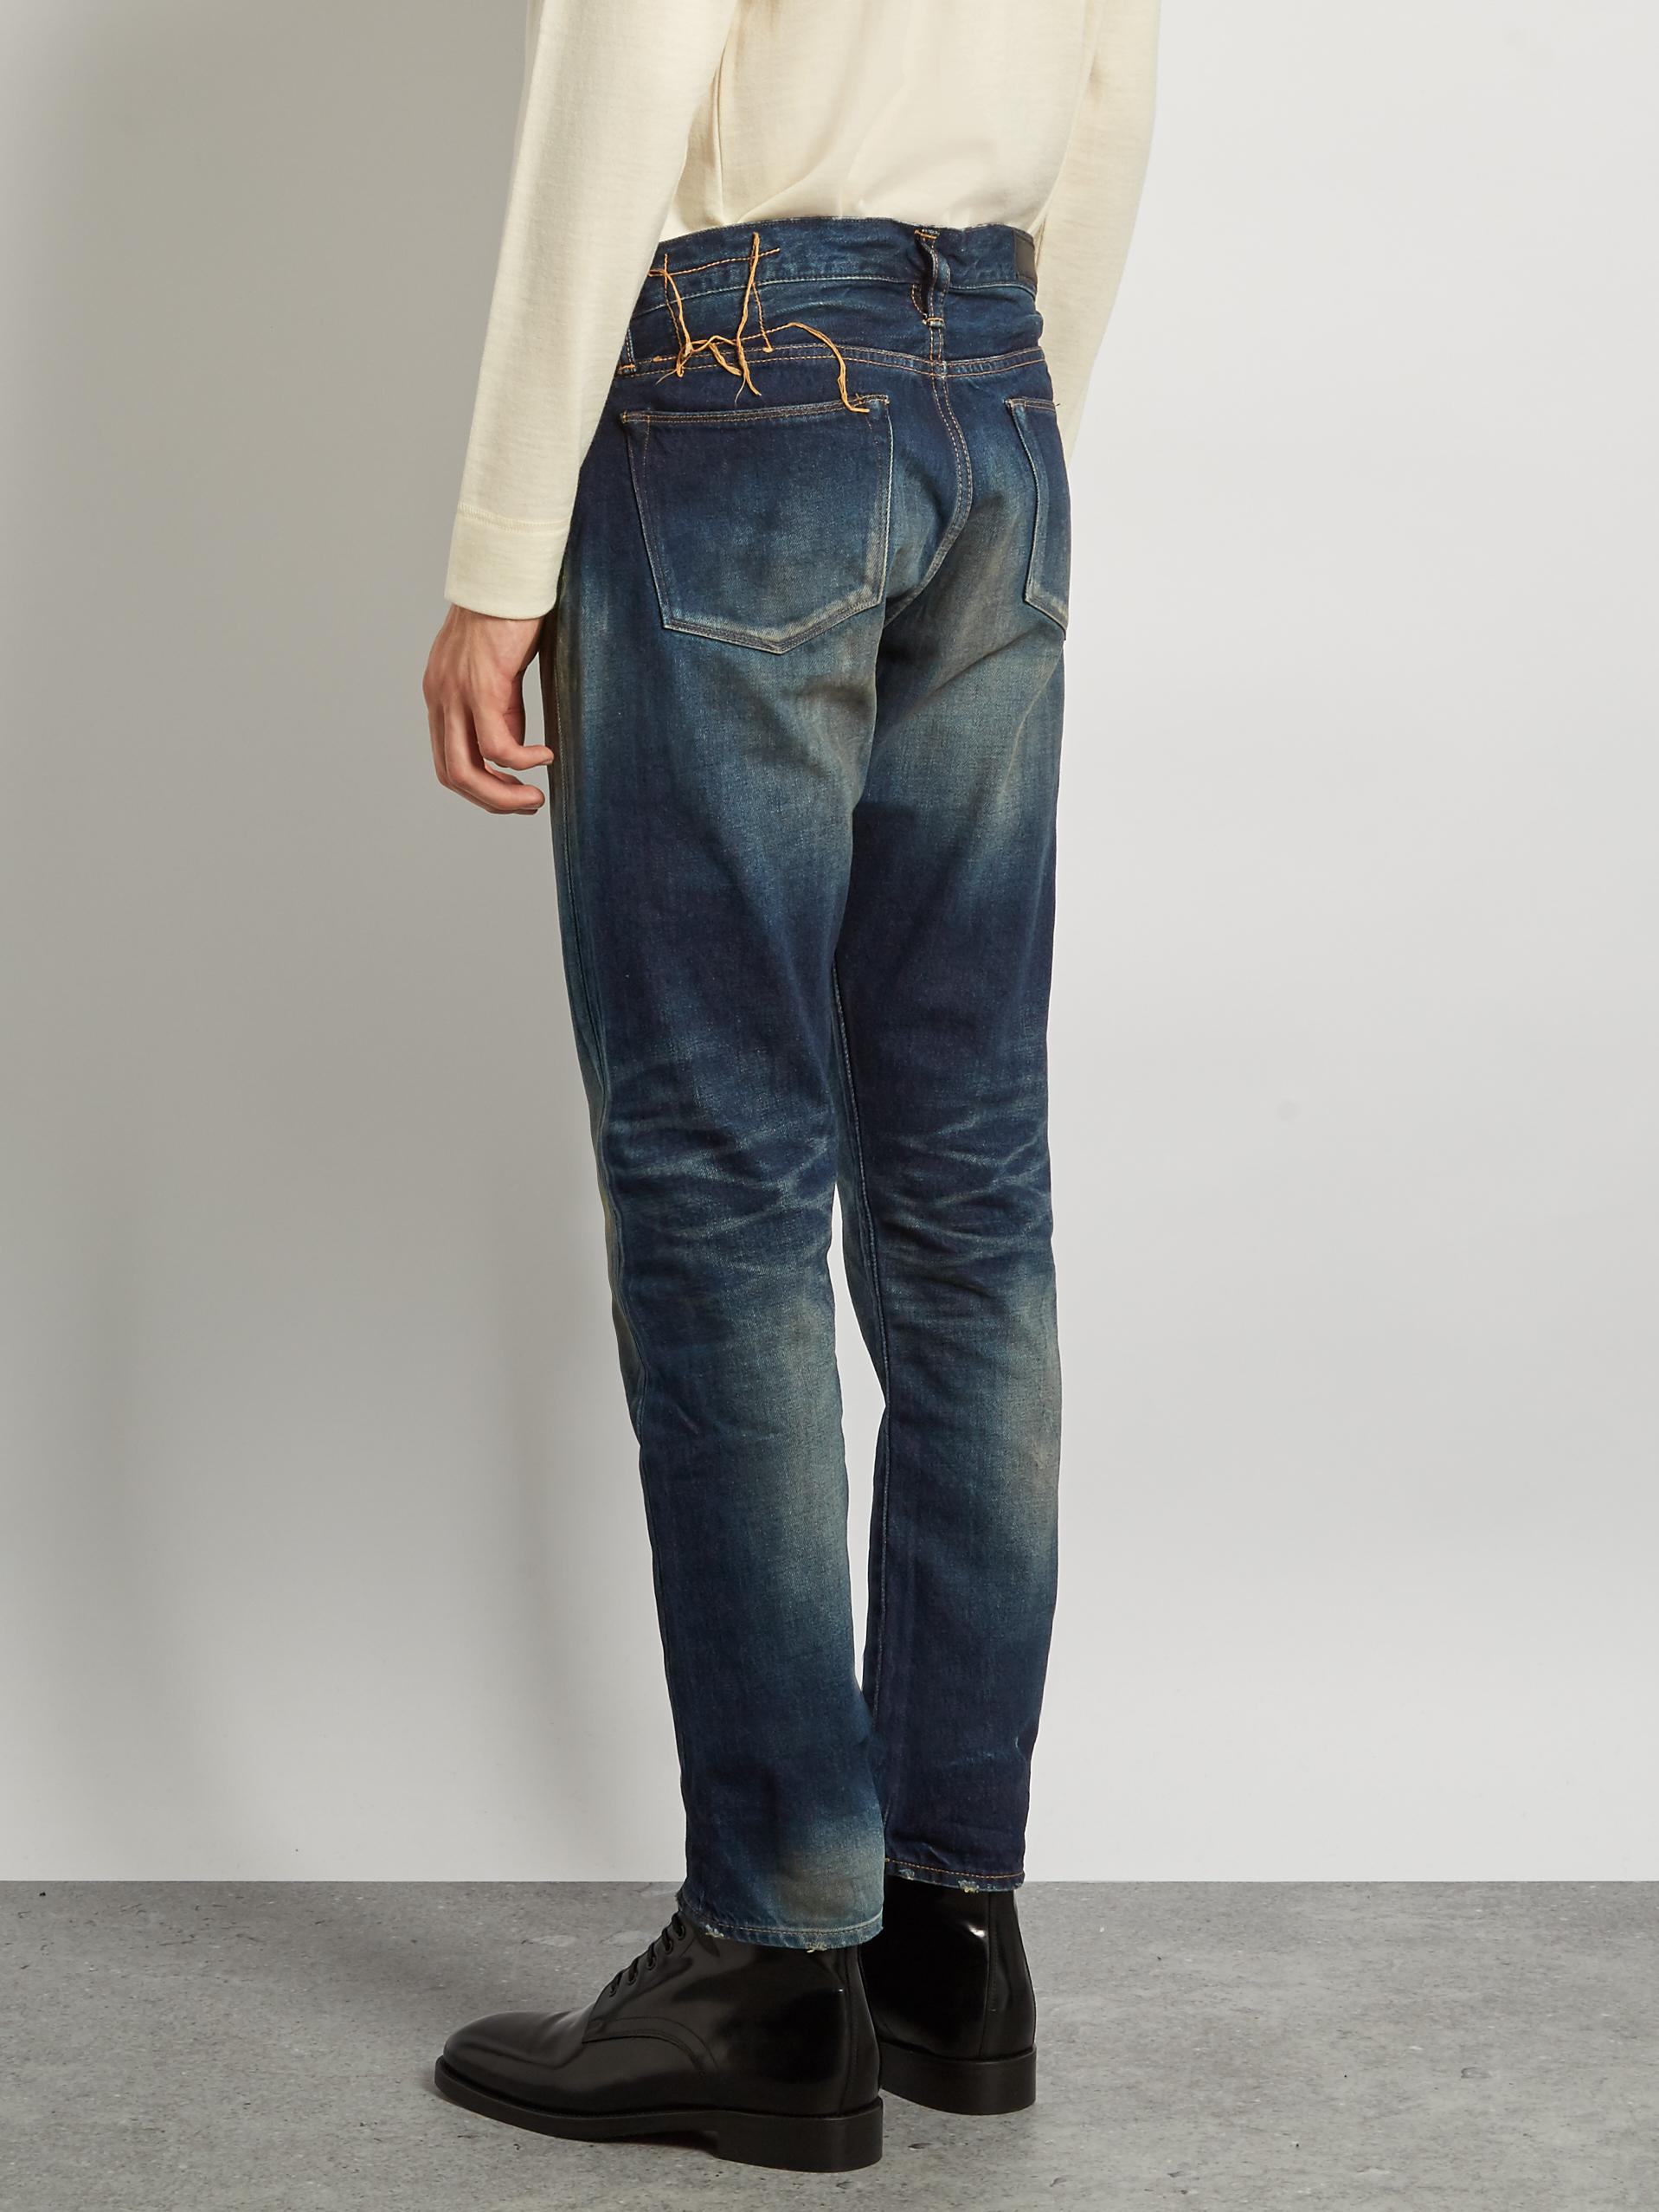 Kuro Denim Aulick Slim-leg Jeans in Blue for Men